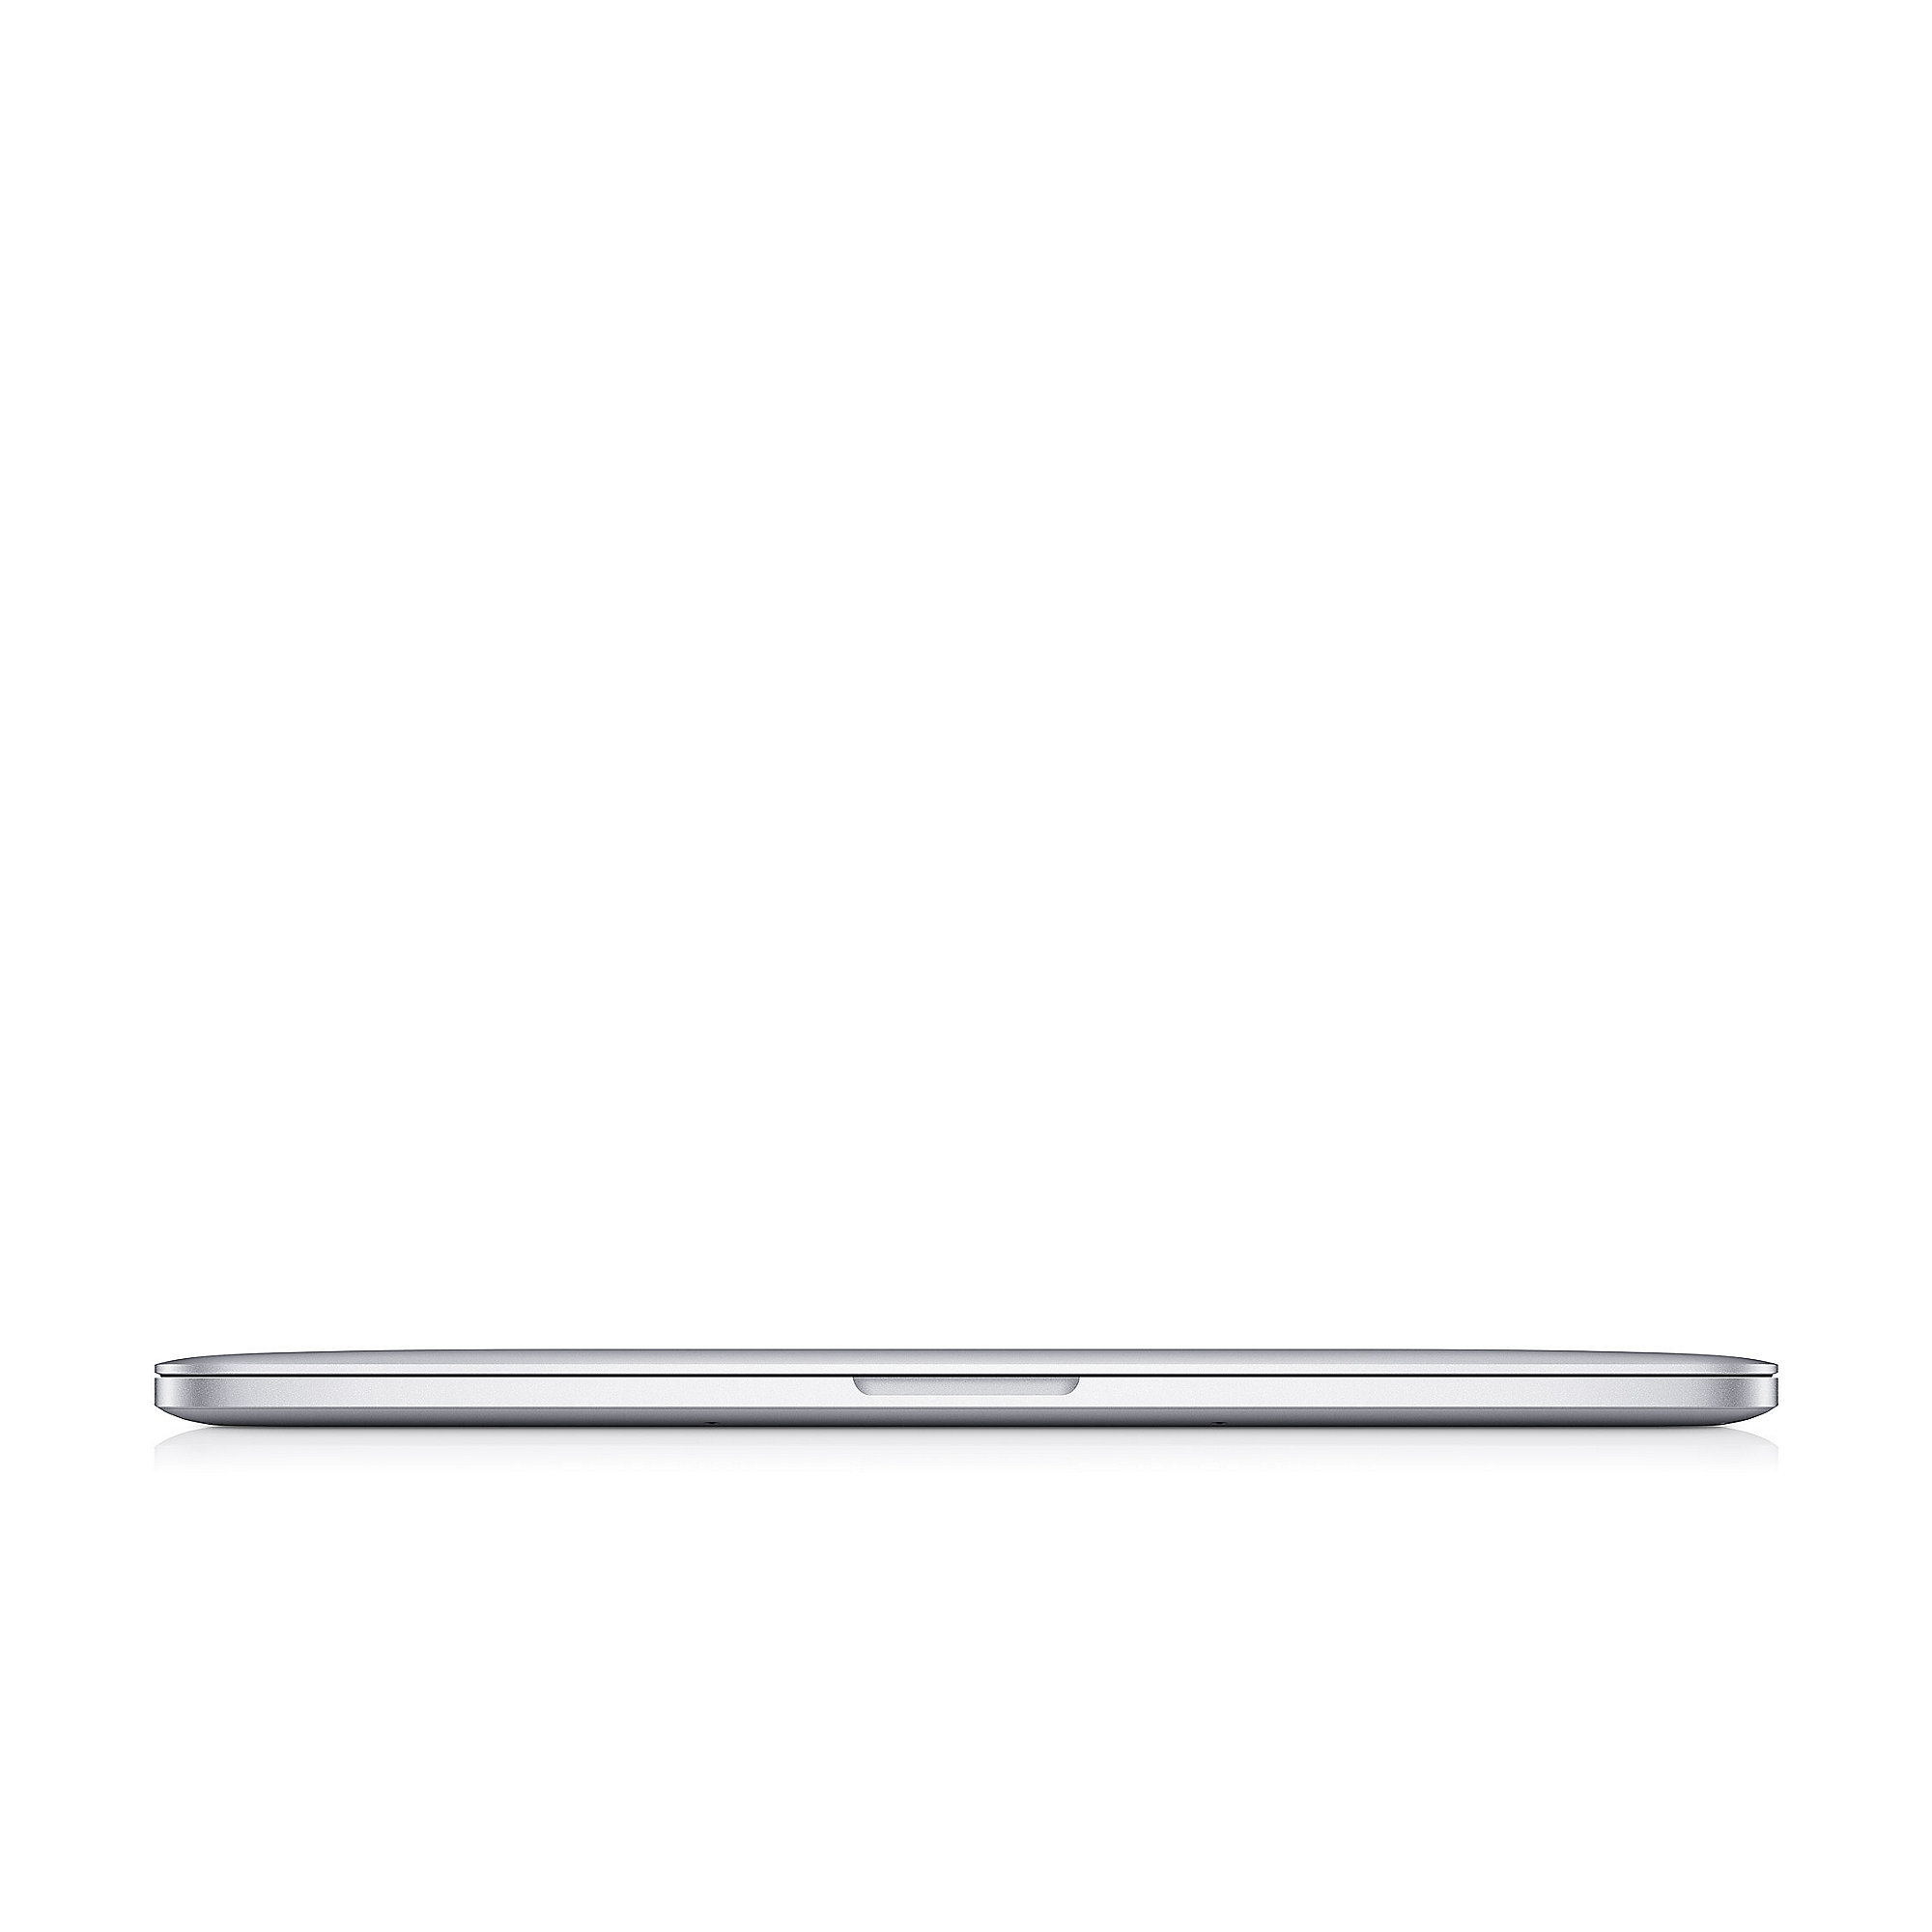 "Apple MacBook Pro 15,4"" Retina 2,2 GHz i7 16 GB 256 GB SSD IIP engl. int. BTO"